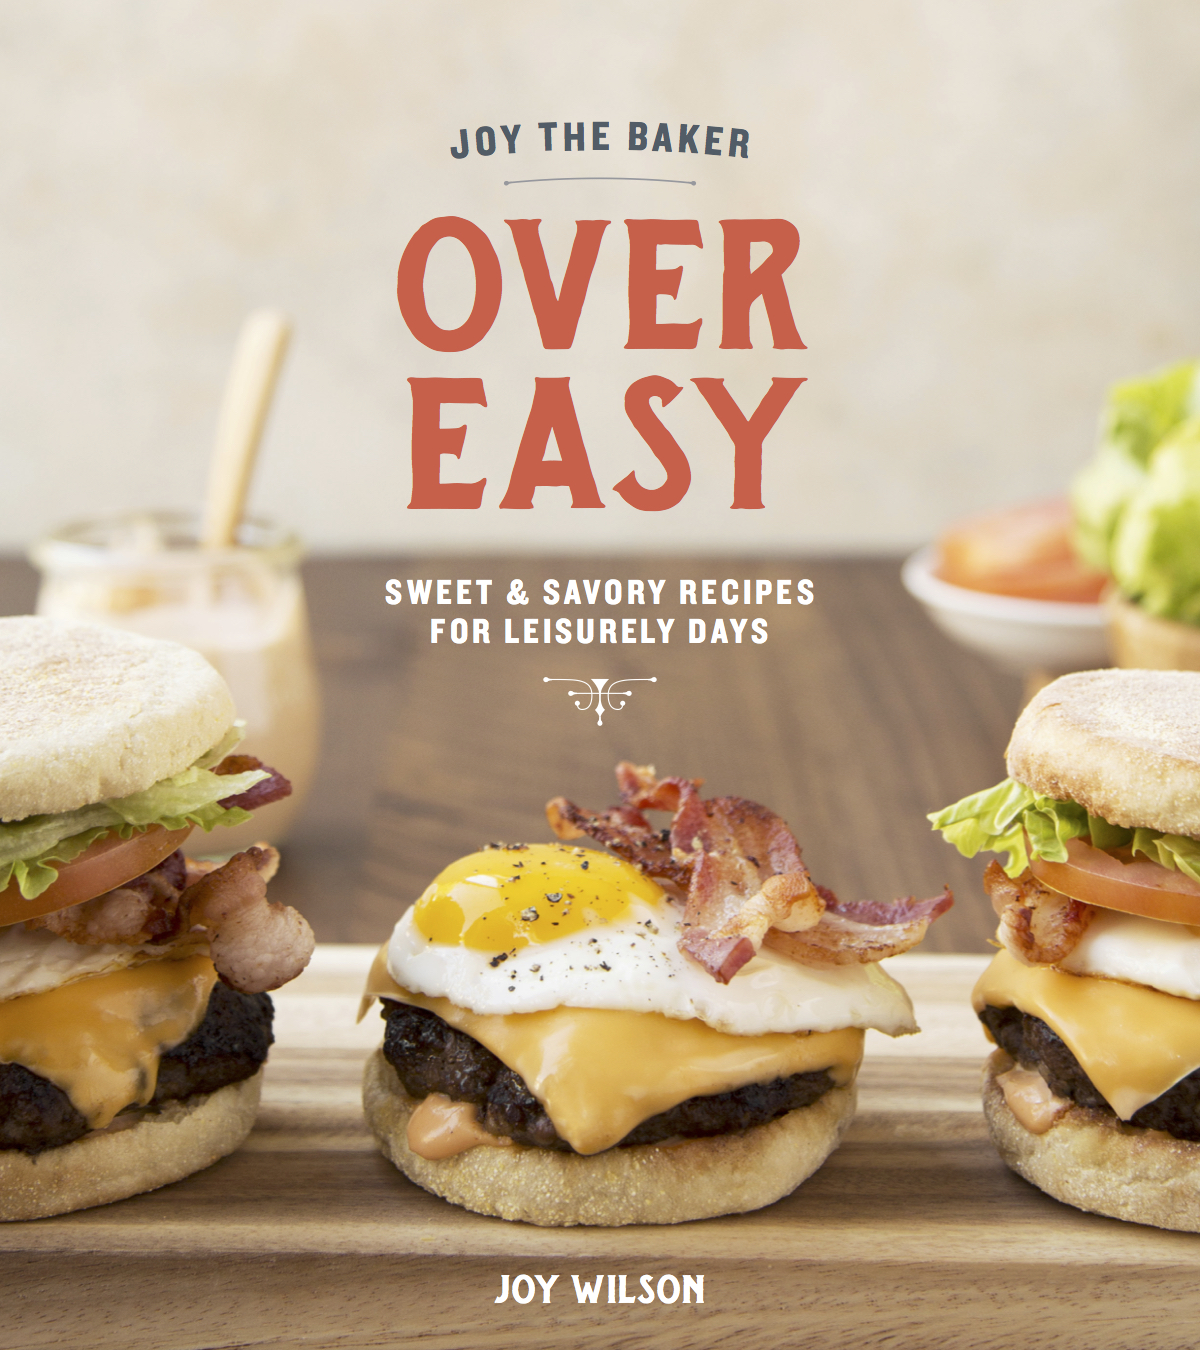 Joy the Baker Celebrates Release of Over Easy with a Q&A and Book Signing at Pages Bookshop